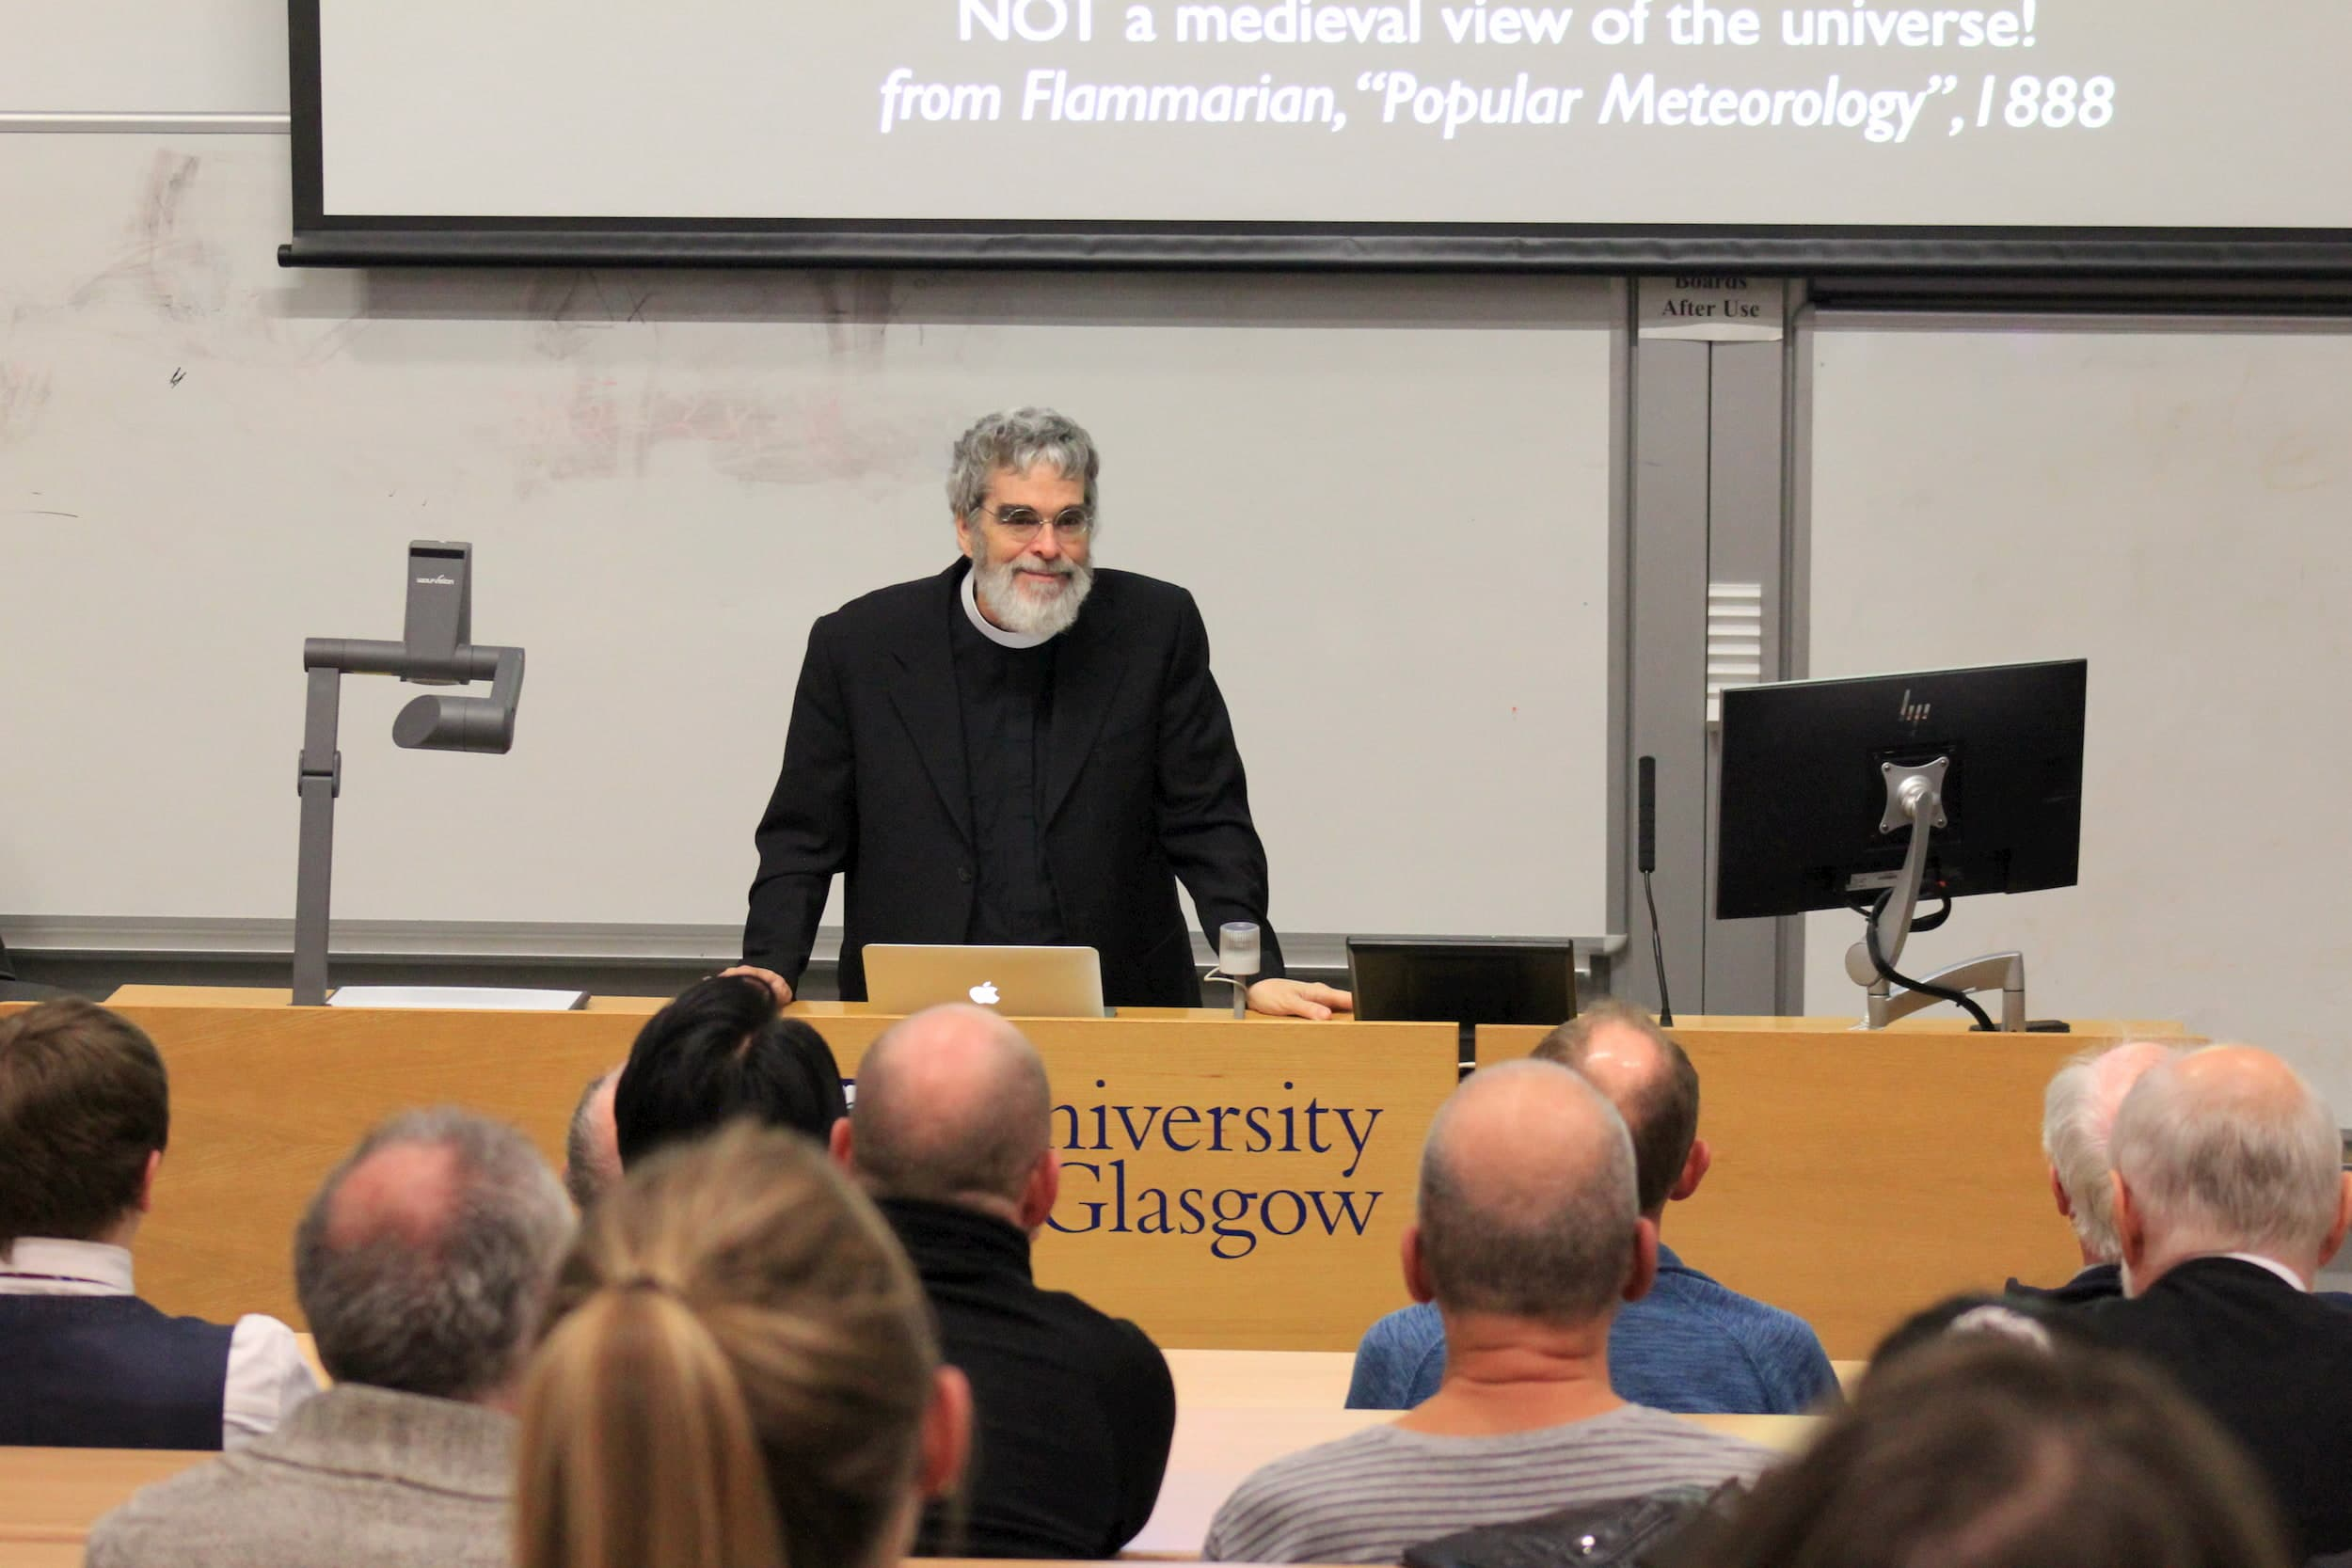 Br. Guy Consolmagno S.J. speaking to the Royal Philosophical Society of Scotland at the University of Glasgow